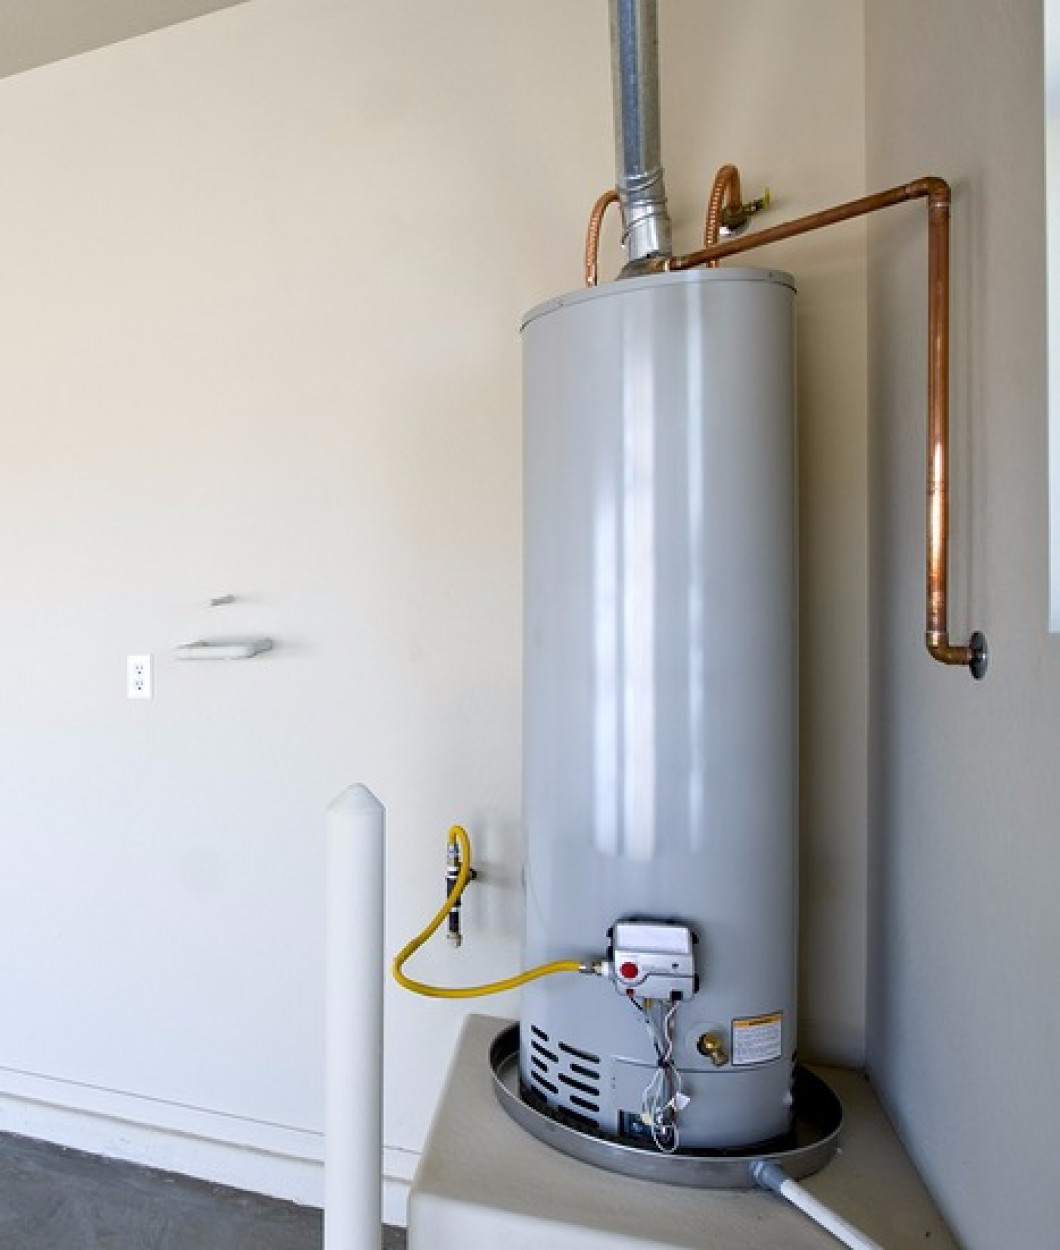 3 things to consider when getting a new water heater - New Water Heater